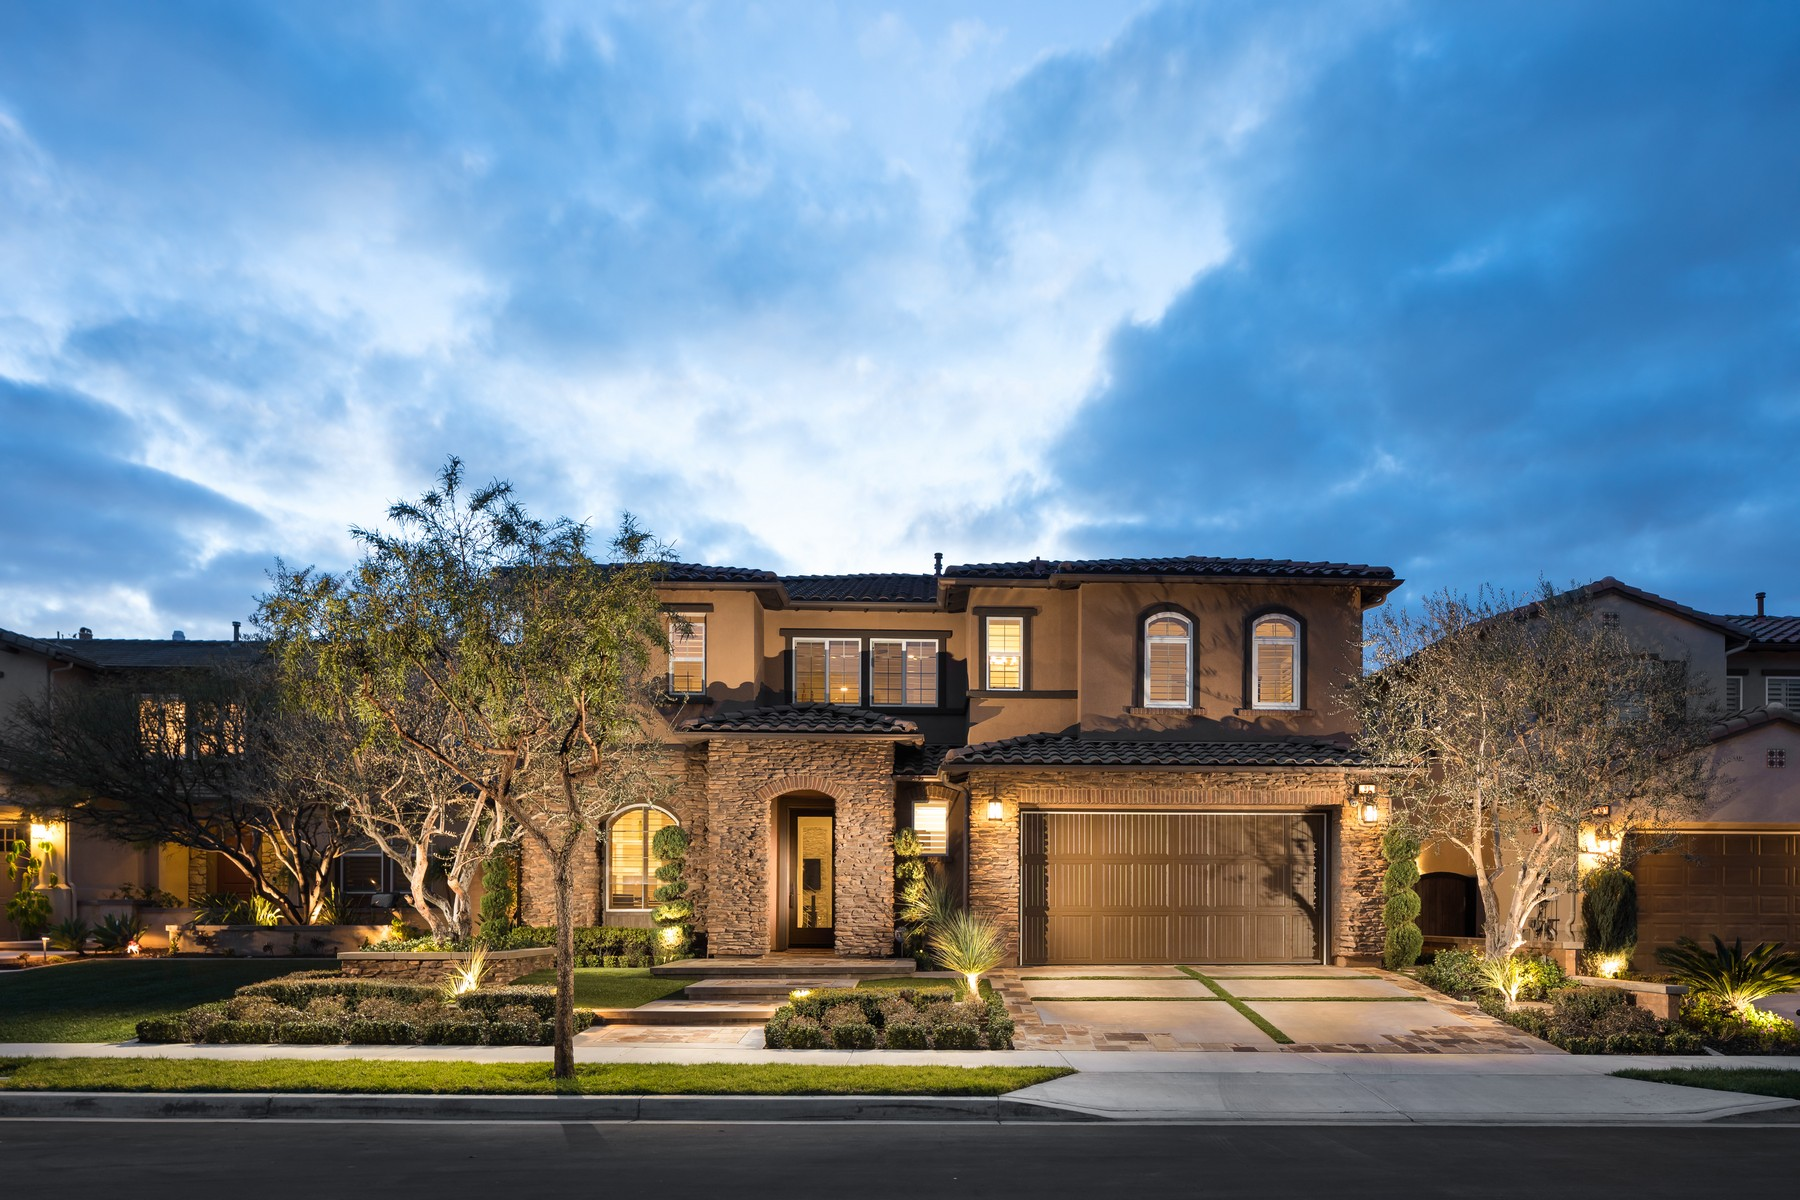 Single Family Homes for Sale at 21 Alisal Court Aliso Viejo, California 92656 United States